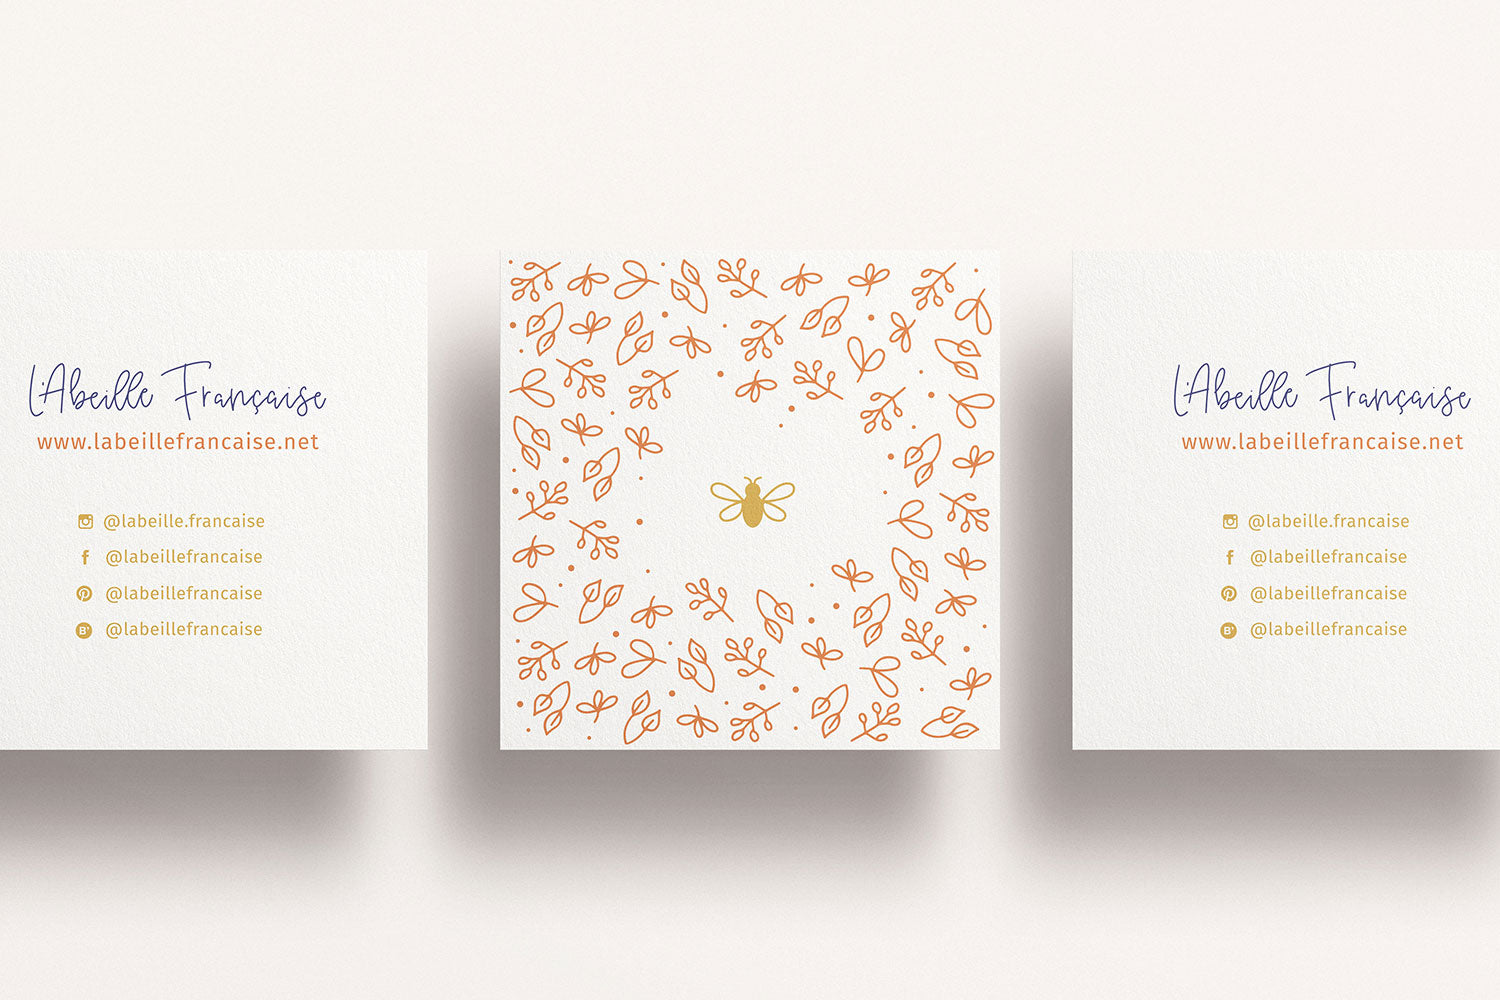 julabrand-labeille-francaise-branding-print-collateral-product-design